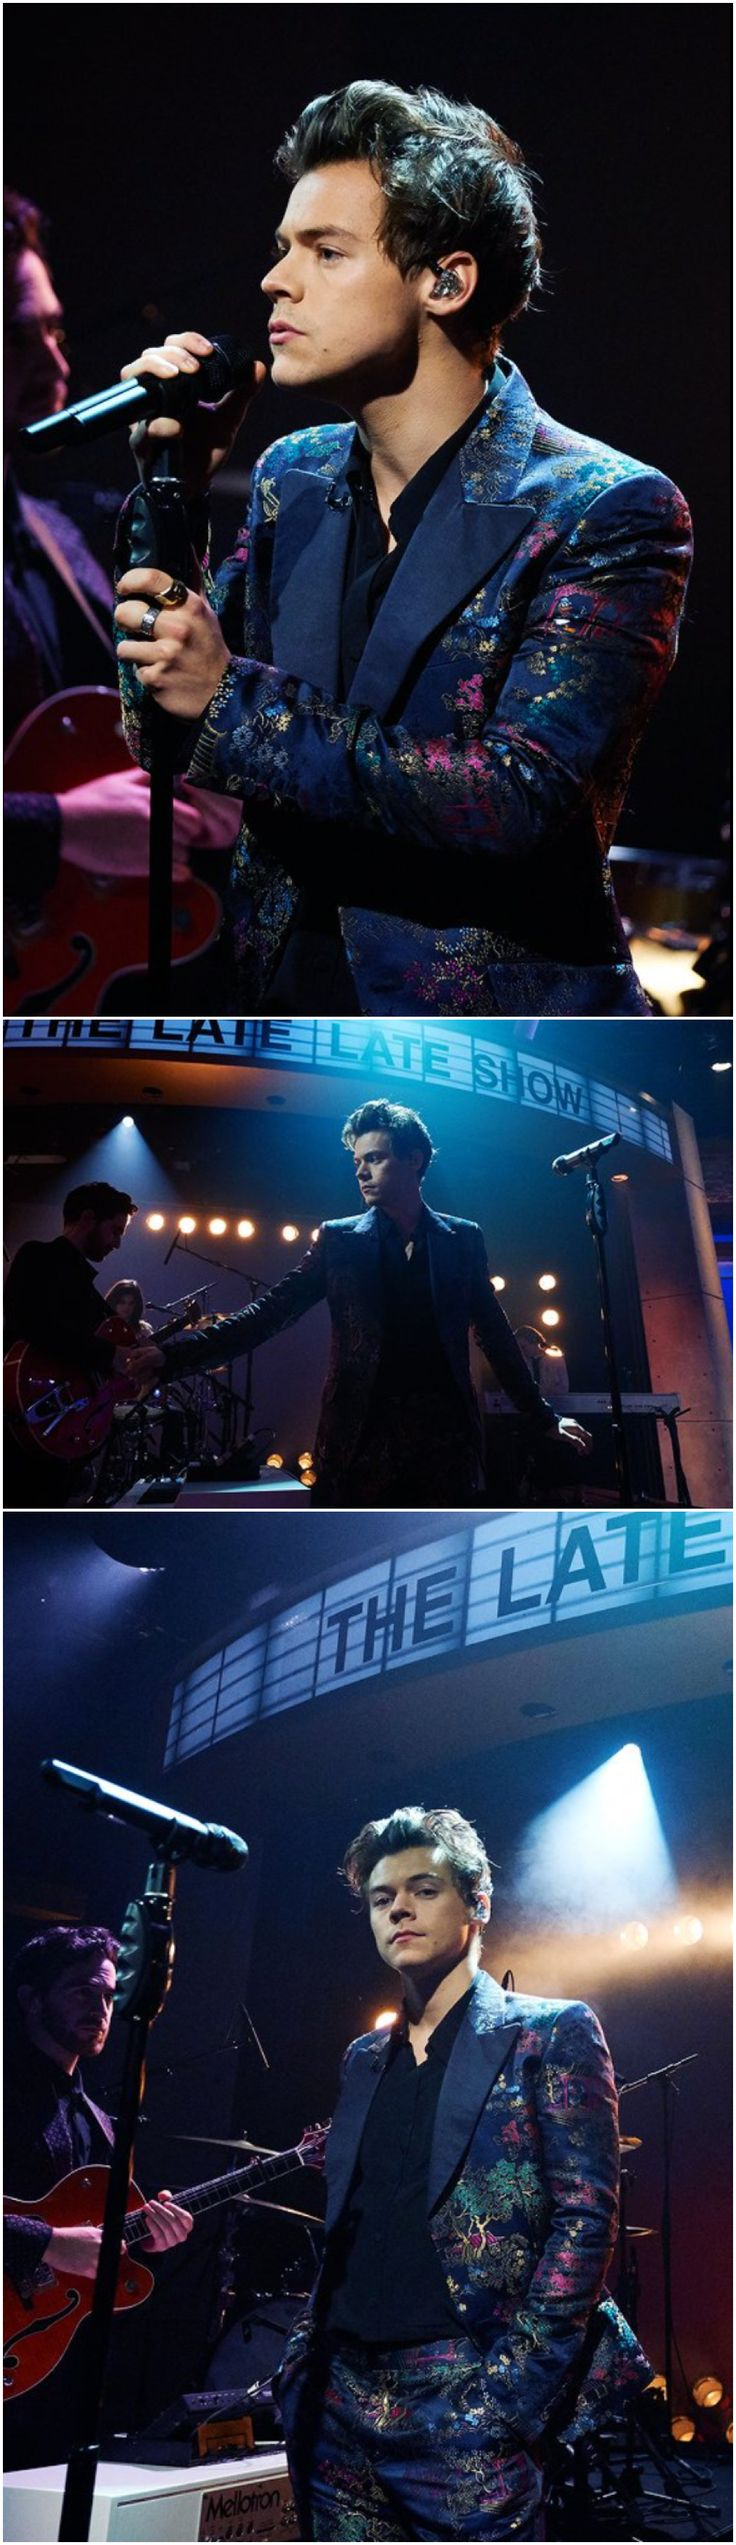 NEW | Harry Performing Sign of the Times on The Late Late Show with James Corden